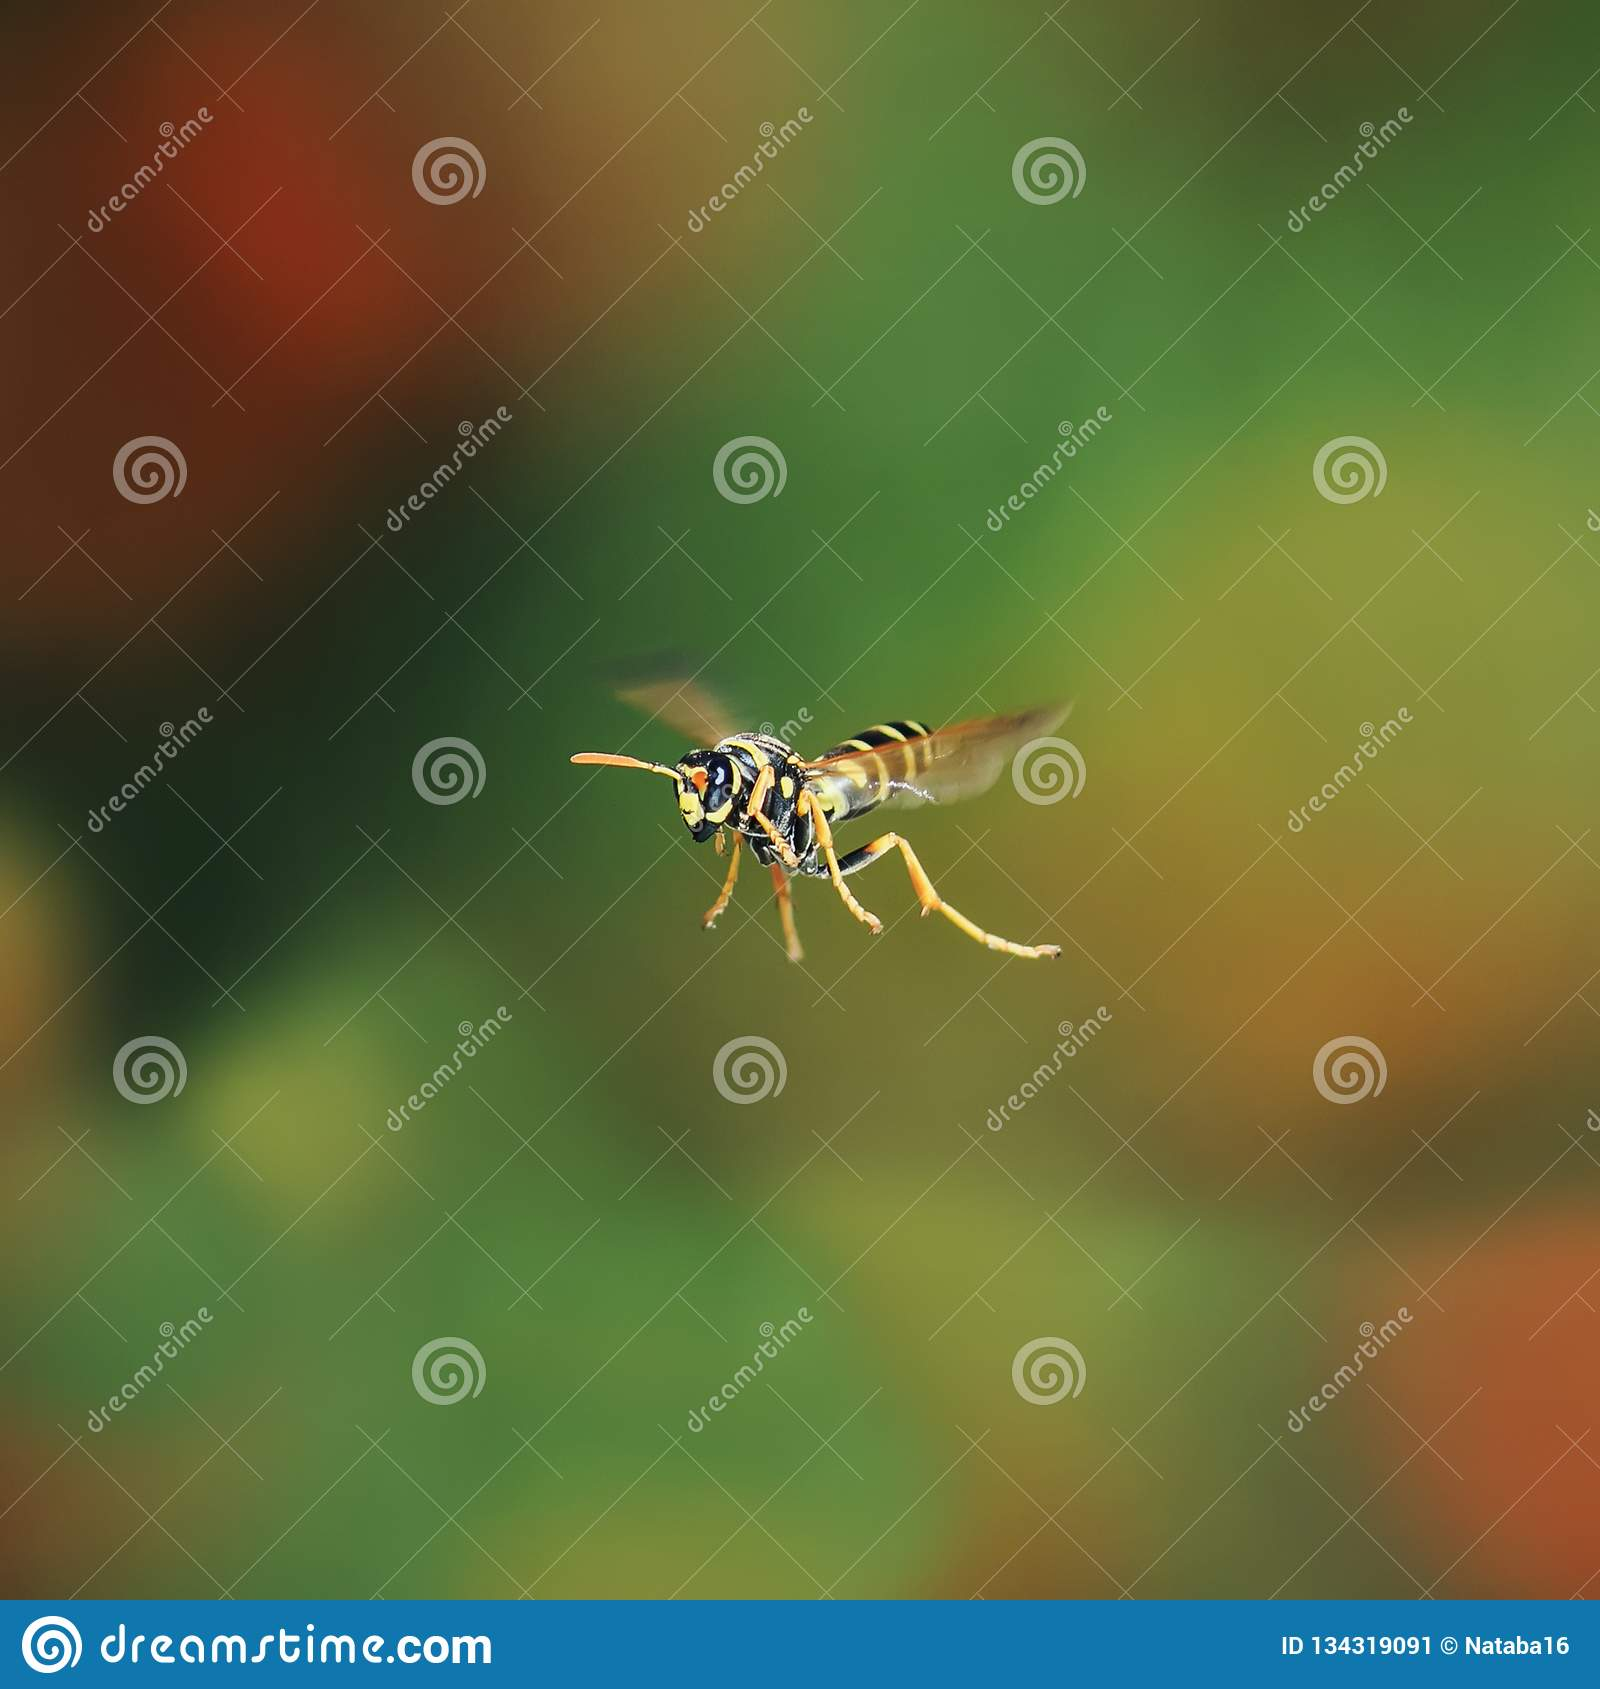 insect wasp flying in Sunny summer garden